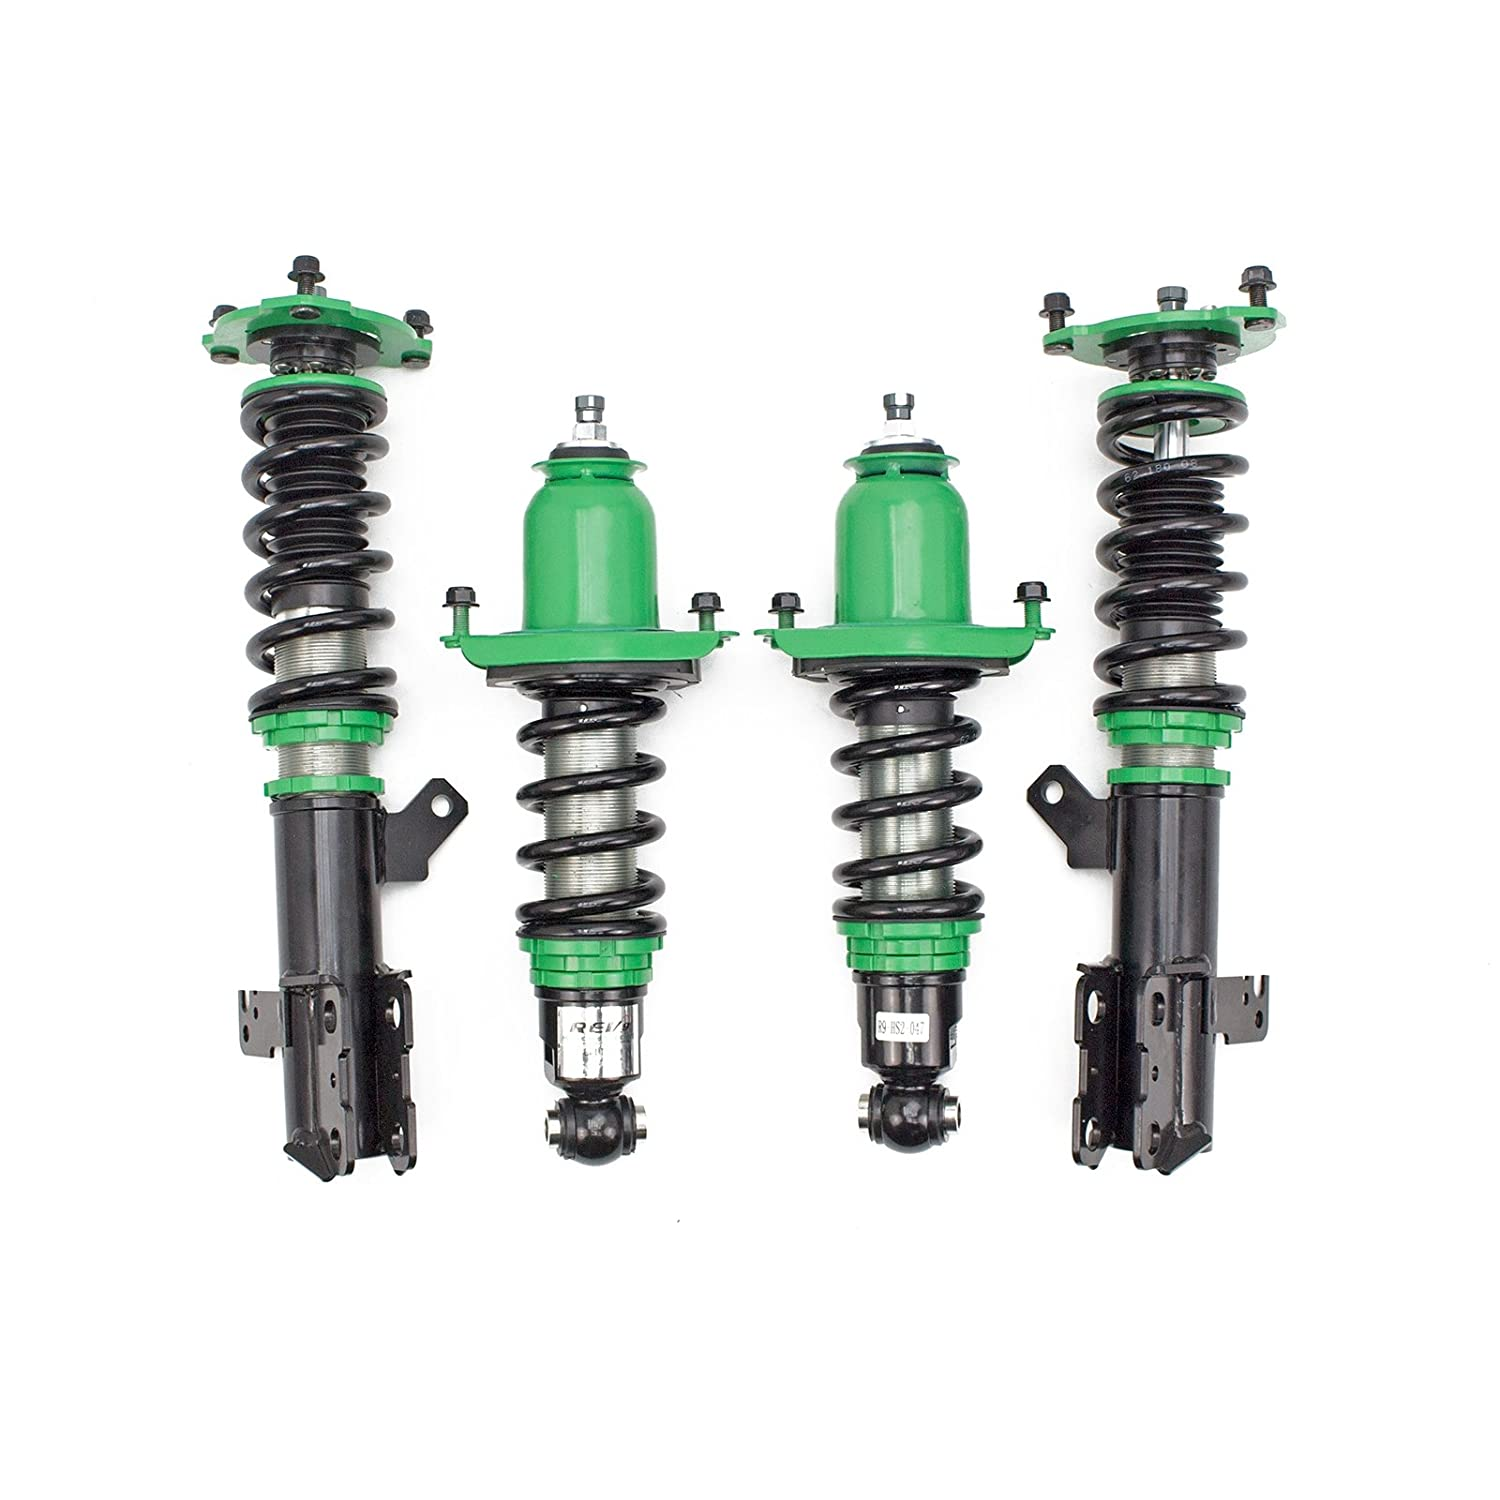 Ride Height Adjustable Rev9 R9-HS2-047 compatible with Scion tC 2005-10 Hyper-Street II Coilovers Lowering Kit 32 Damping Level Adjustment